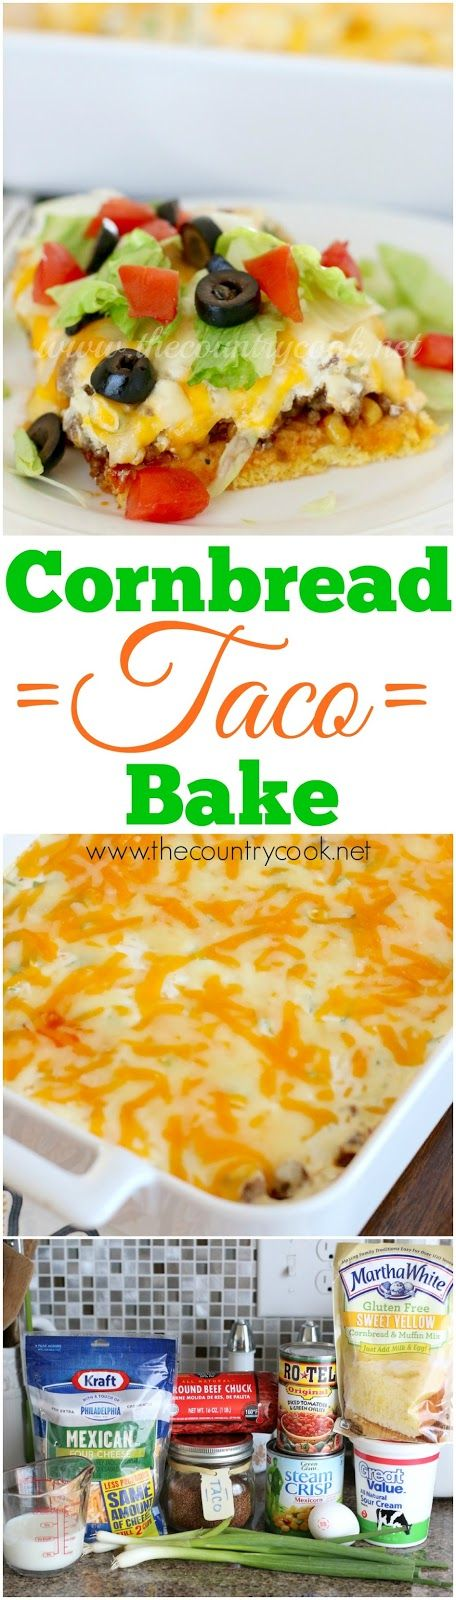 The Country Cook: Cornbread Taco Bake (and a GIVEAWAY!}